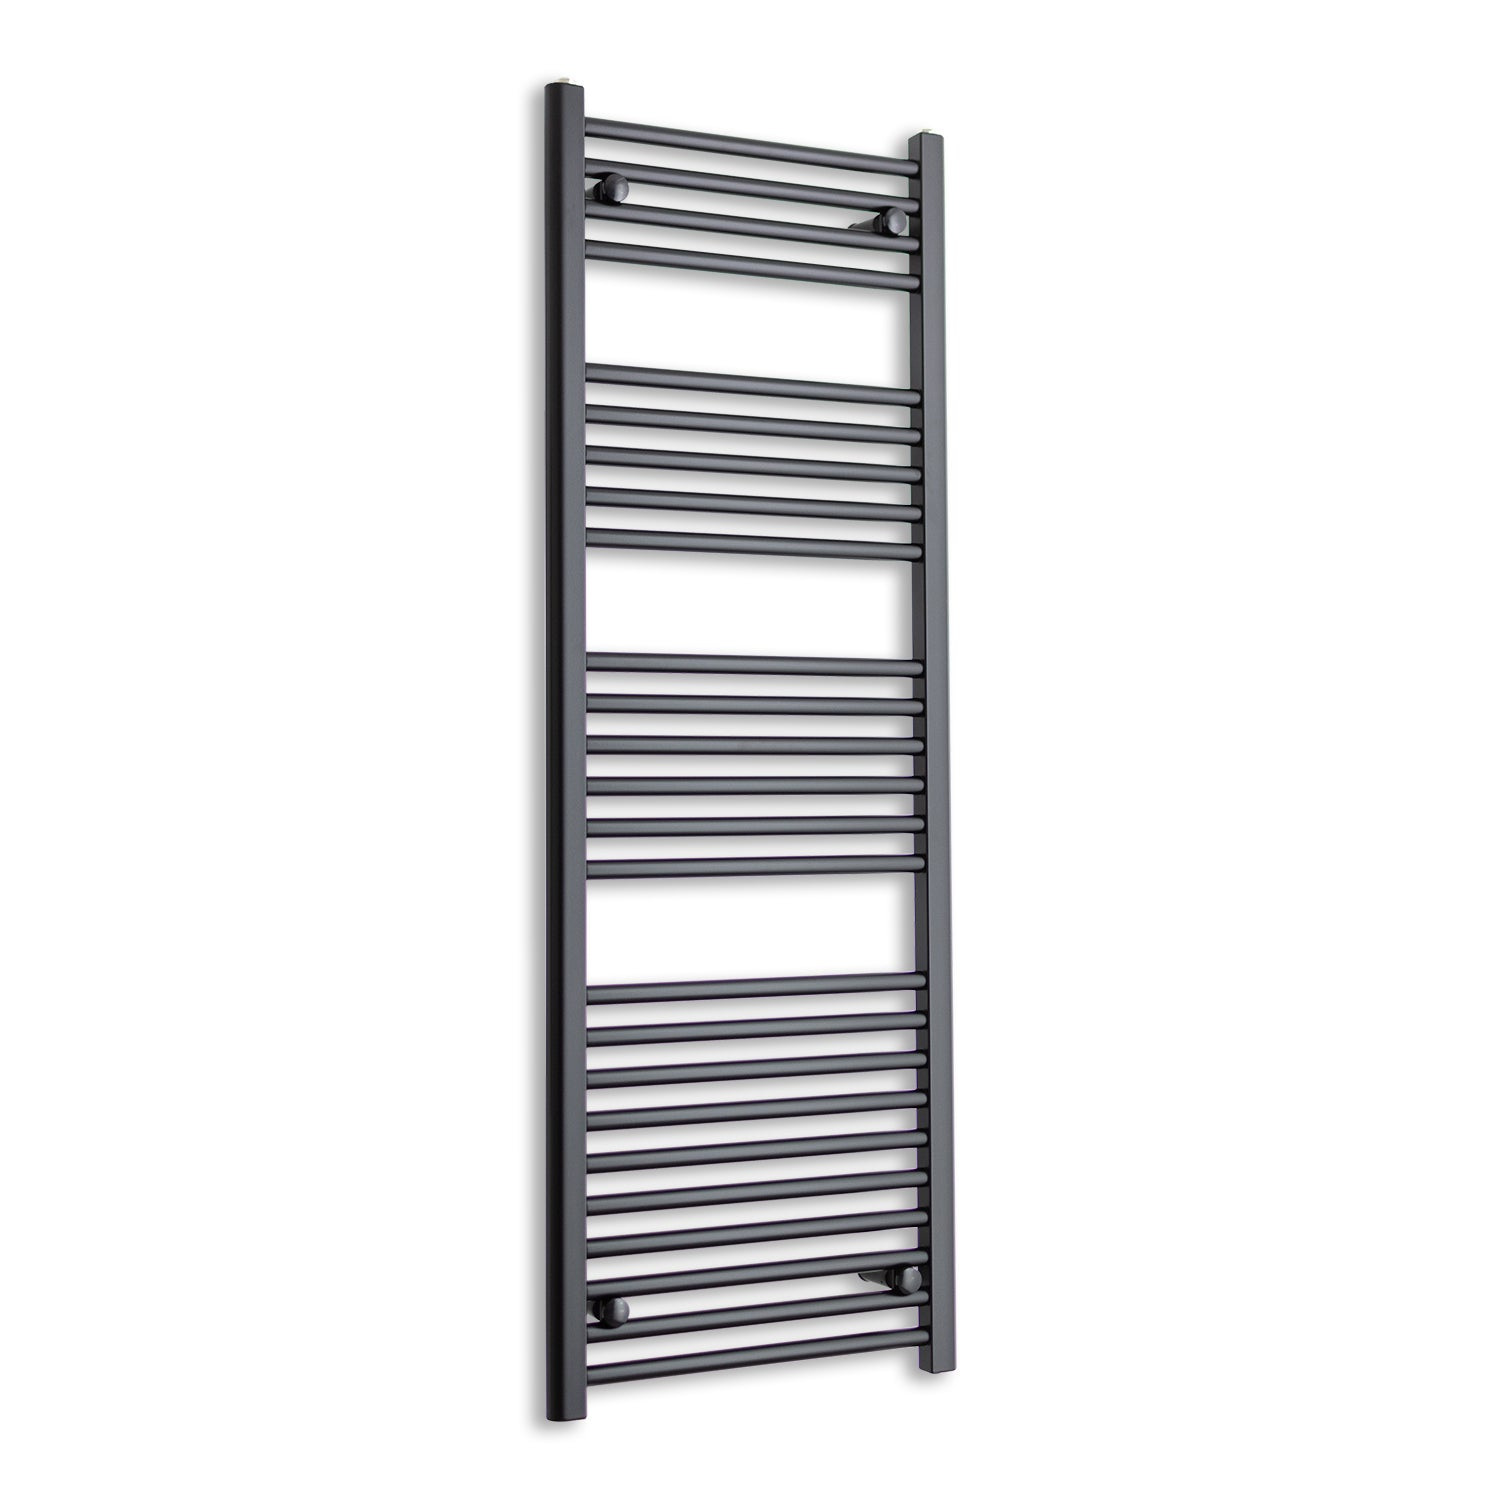 500mm Wide 1400mm High Flat Black Heated Towel Rail Radiator,Towel Rail Only